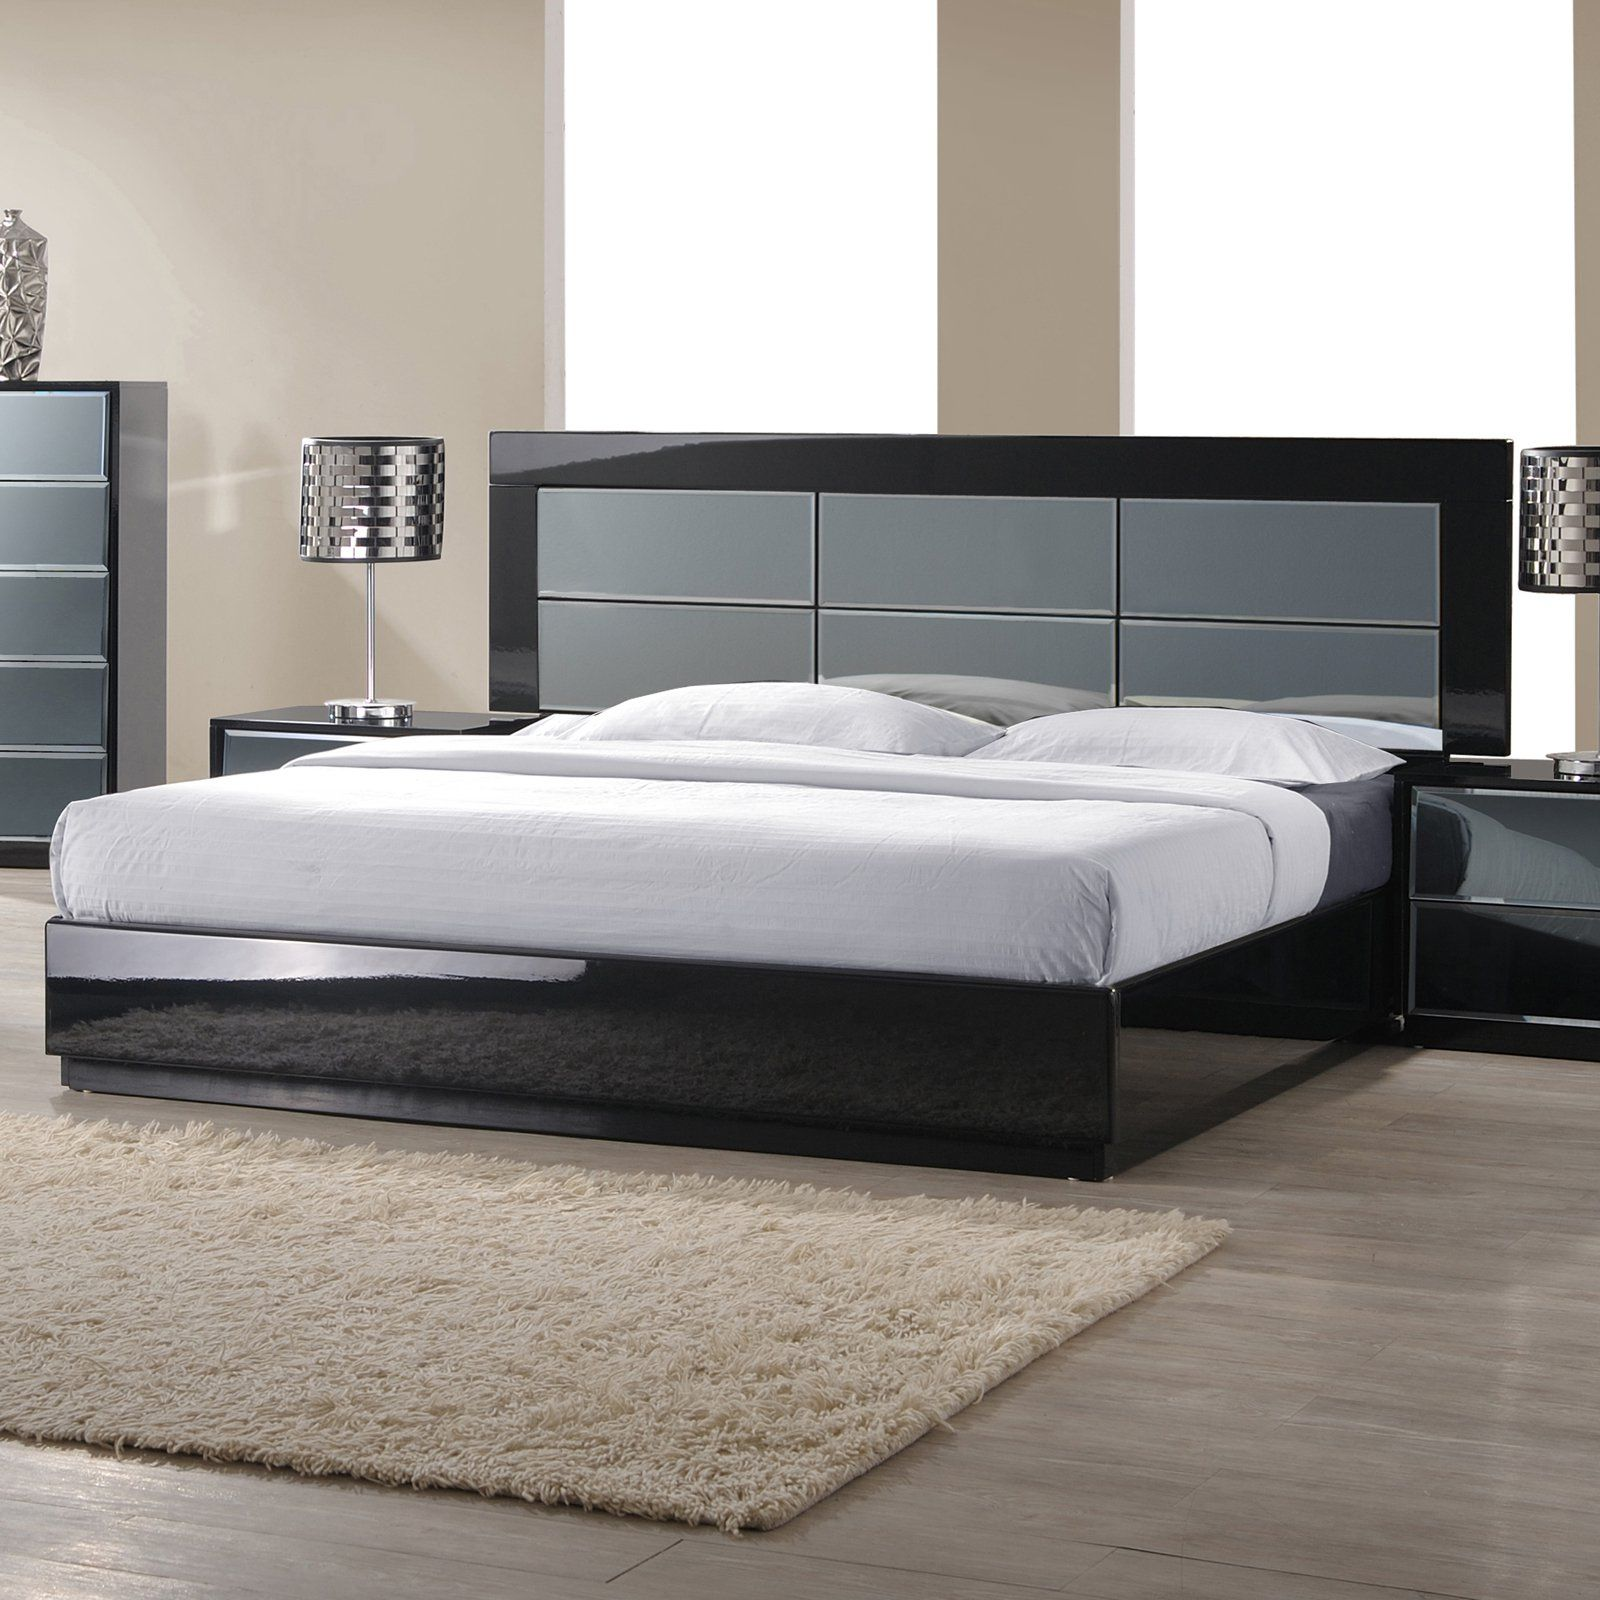 Chintaly Venice Platform Bed In 2020 Bed Furniture Design Bed Design Modern Bedroom Furniture Design